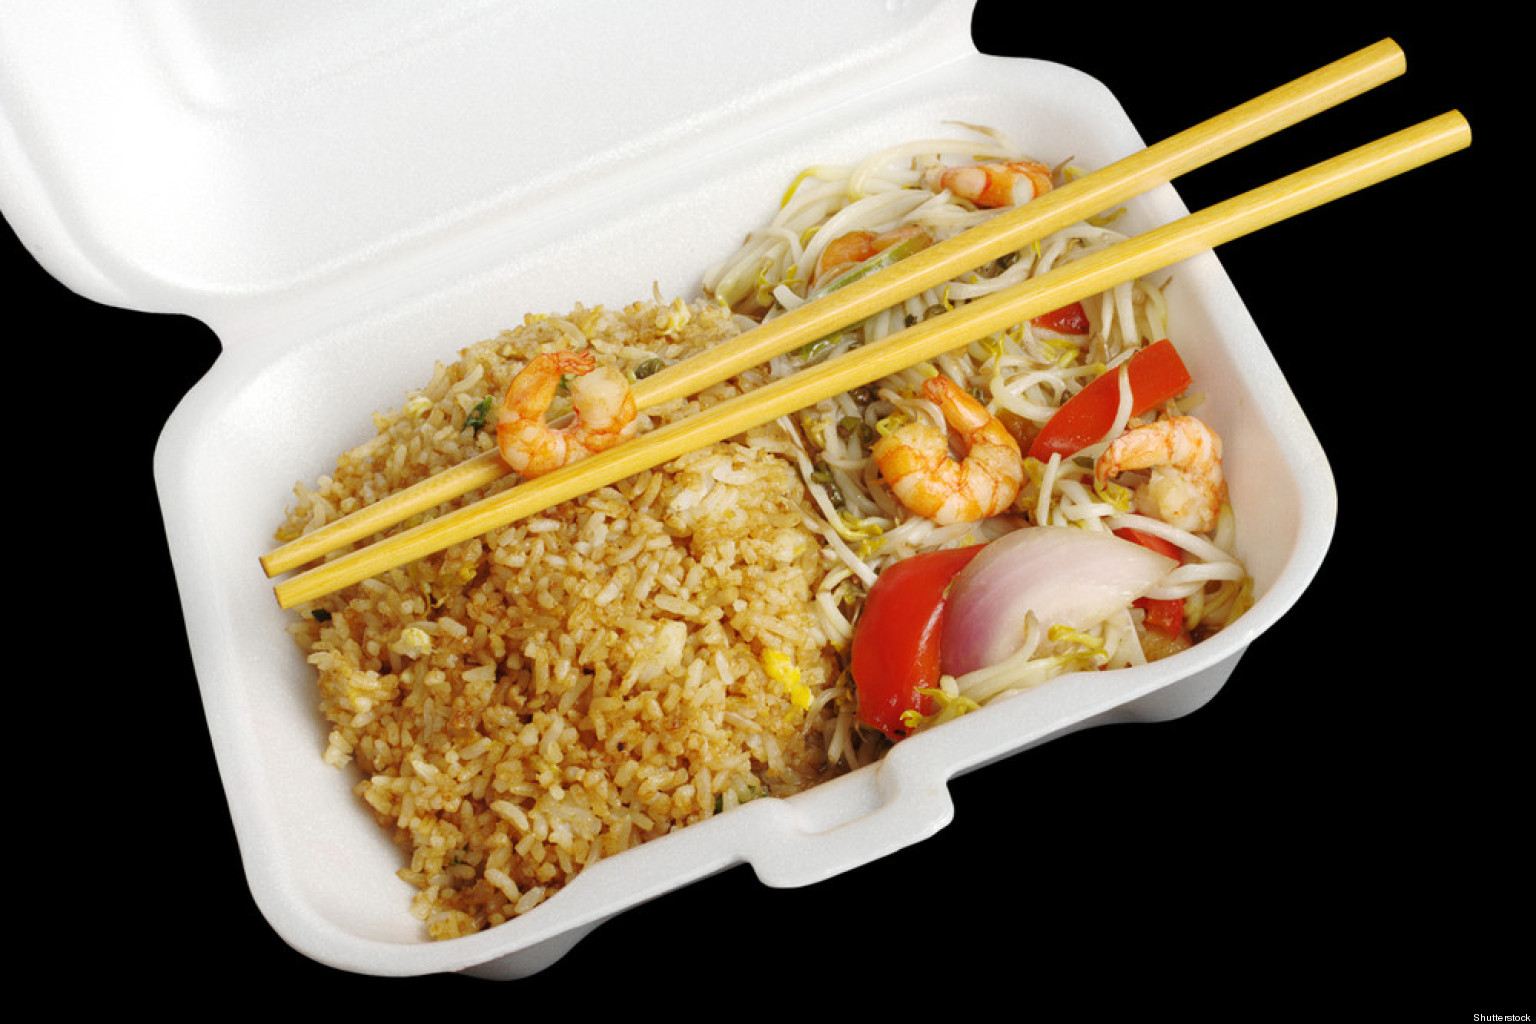 Worst Restaurant Food: 37 Healthy And Unhealthy Ethnic ...